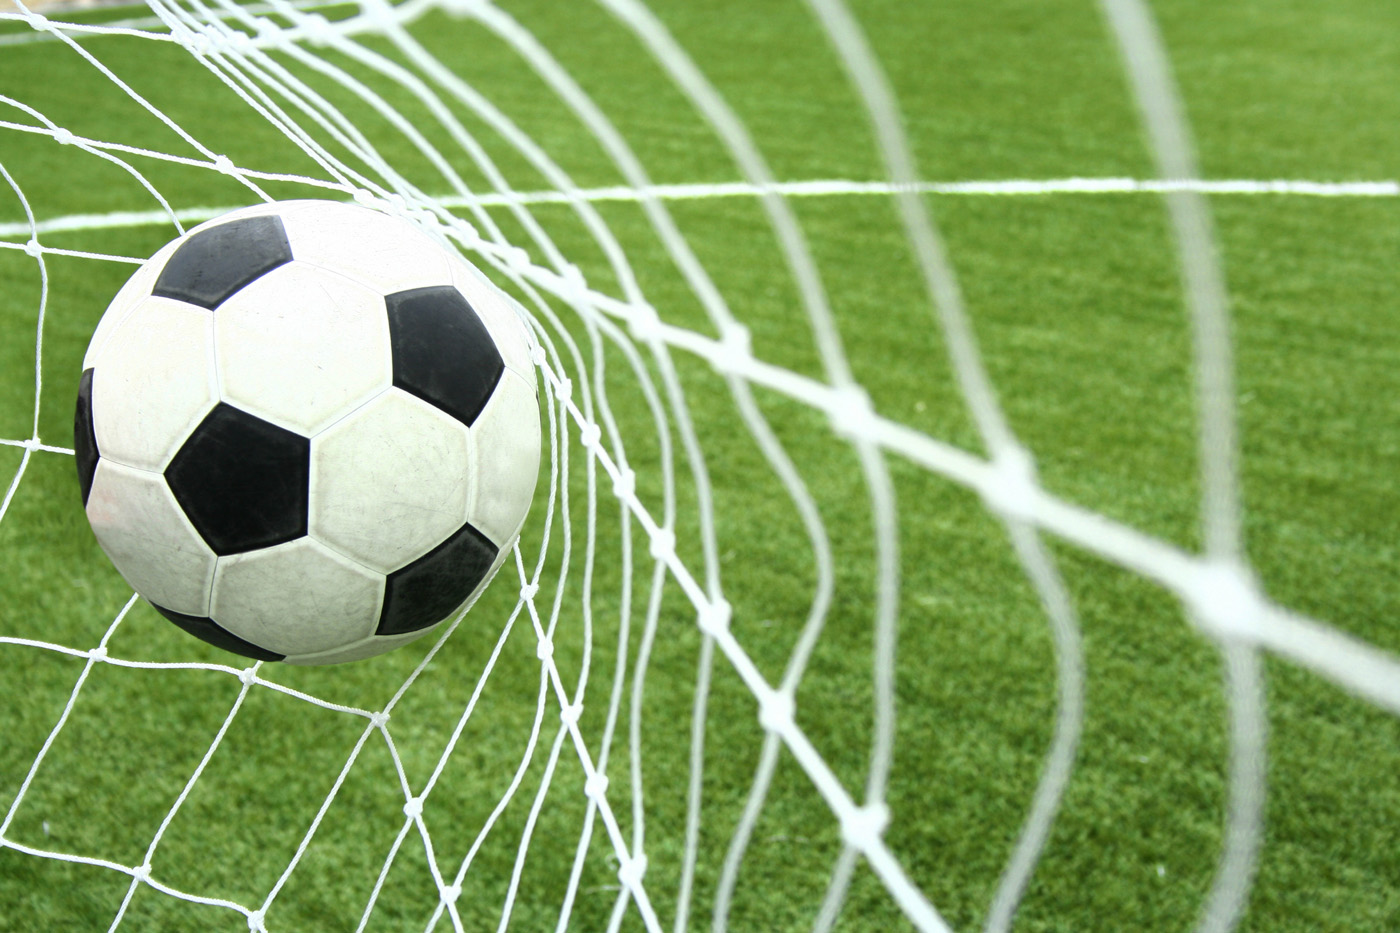 Football Goal in the Net